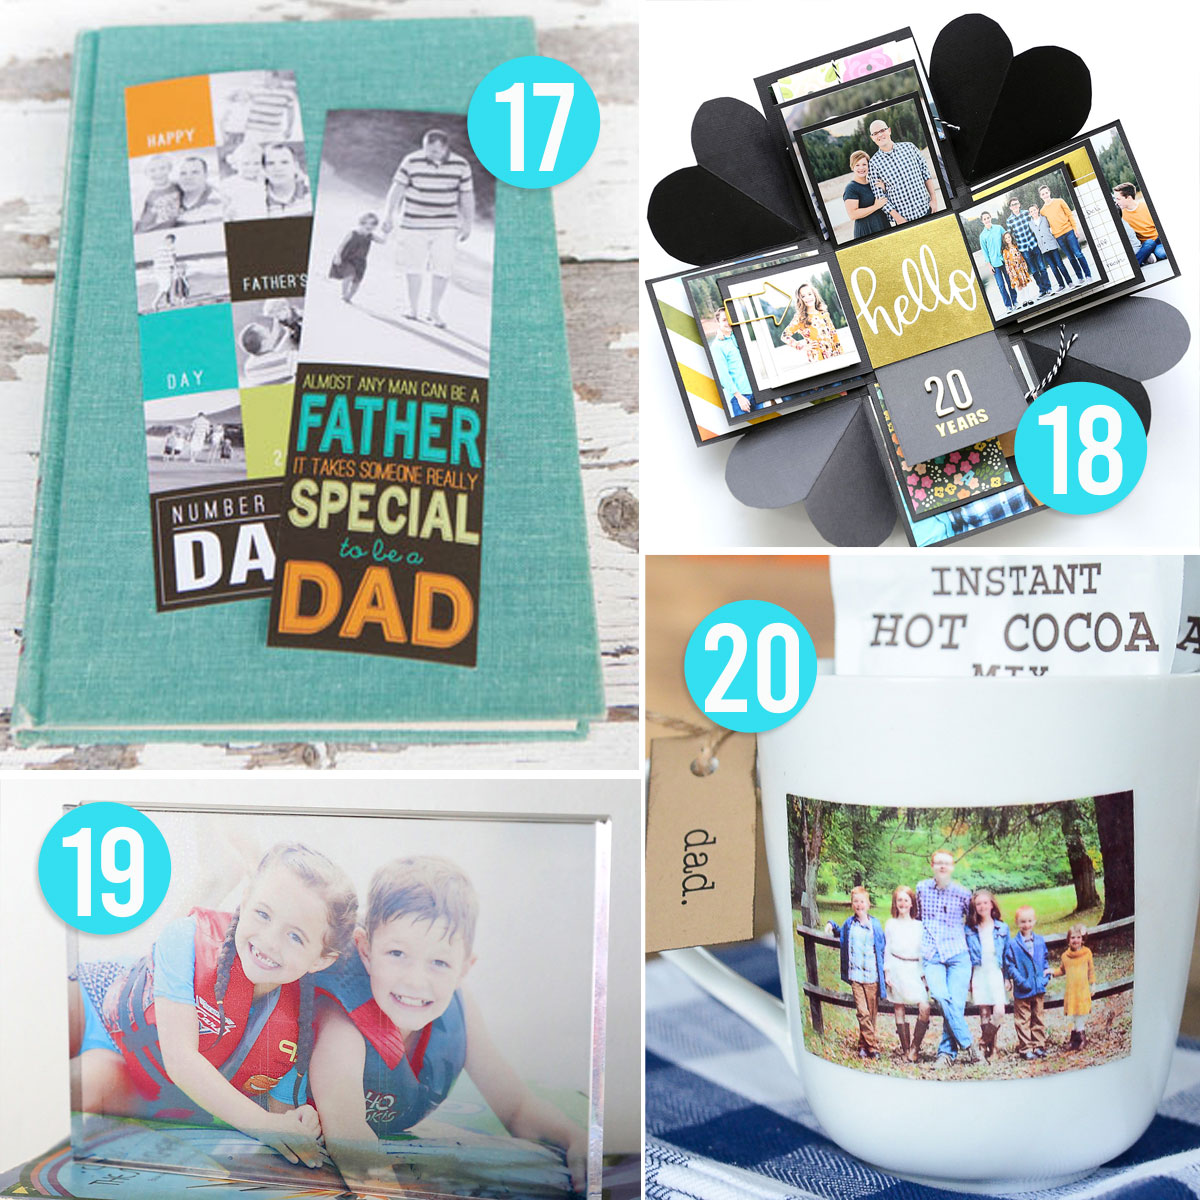 20 DIY Father's Day gift ideas: photo bookmarks, photo mug, etc.